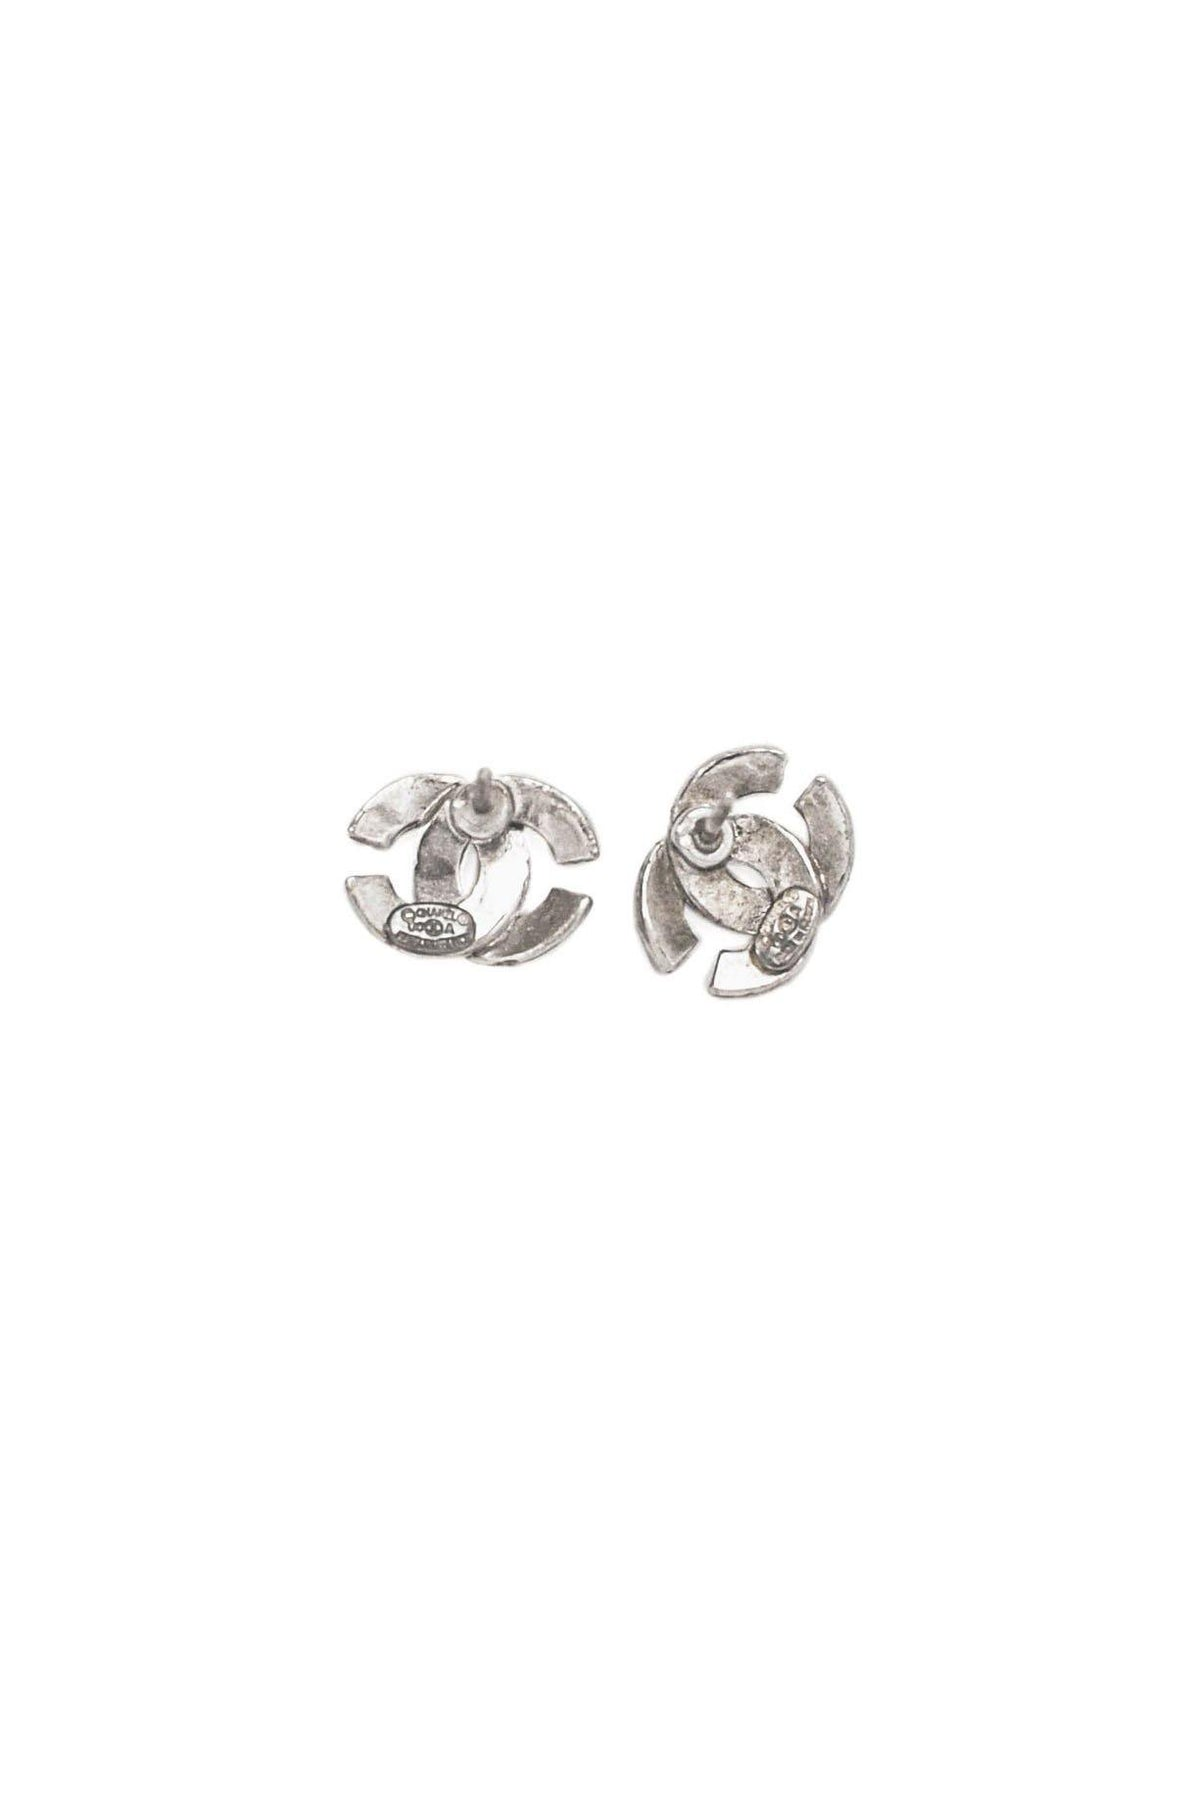 Vintage Chanel CC Silver Pierced Earrings from Sweet and Spark